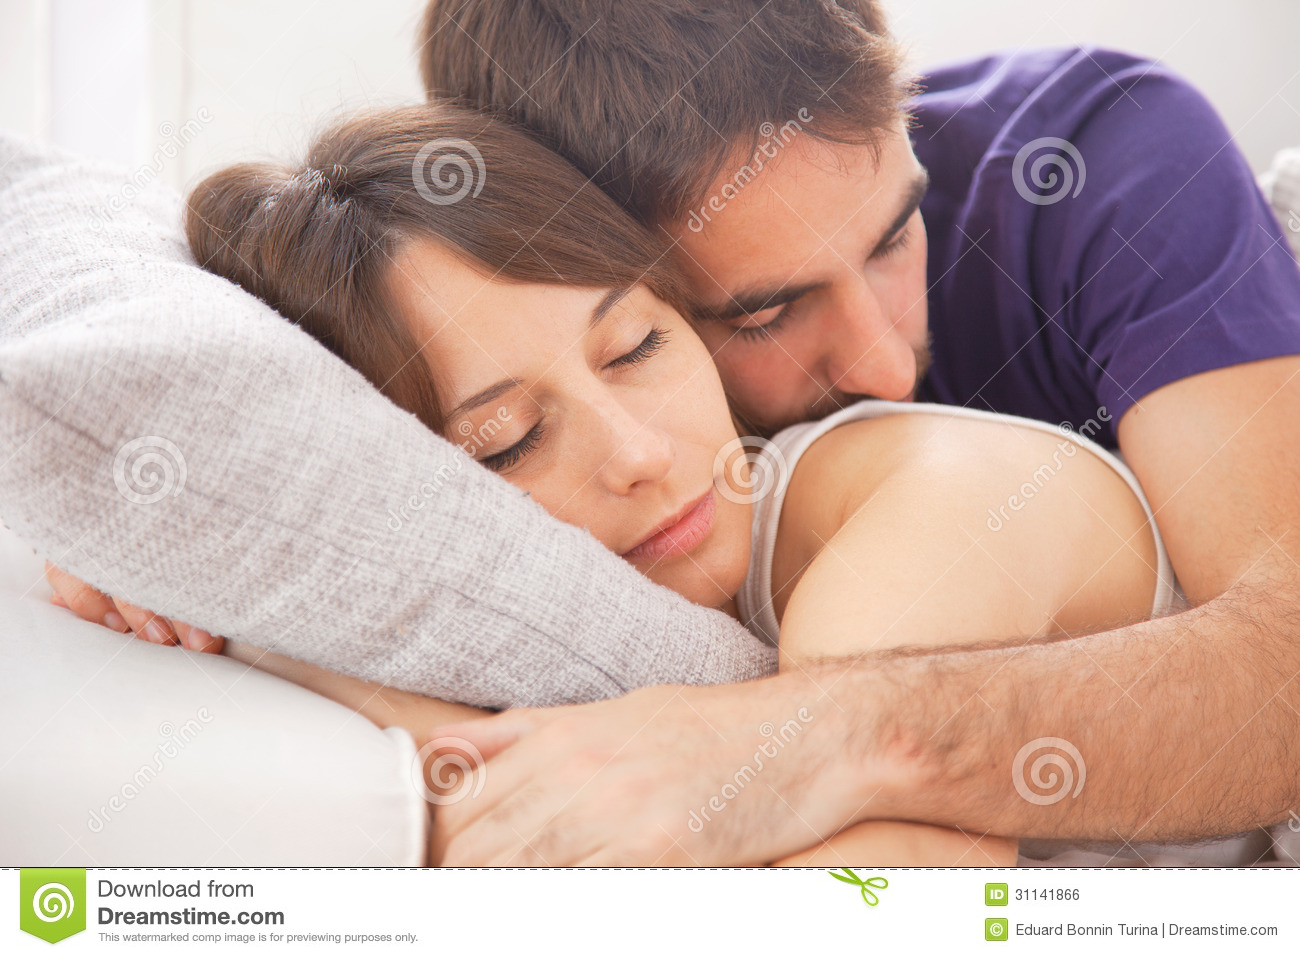 Portrait Of A Young Couple Sleeping On Bed Royalty Free  : portrait young couple sleeping bed lovely resting bedroom 31141866 from www.dreamstime.com size 1300 x 957 jpeg 323kB